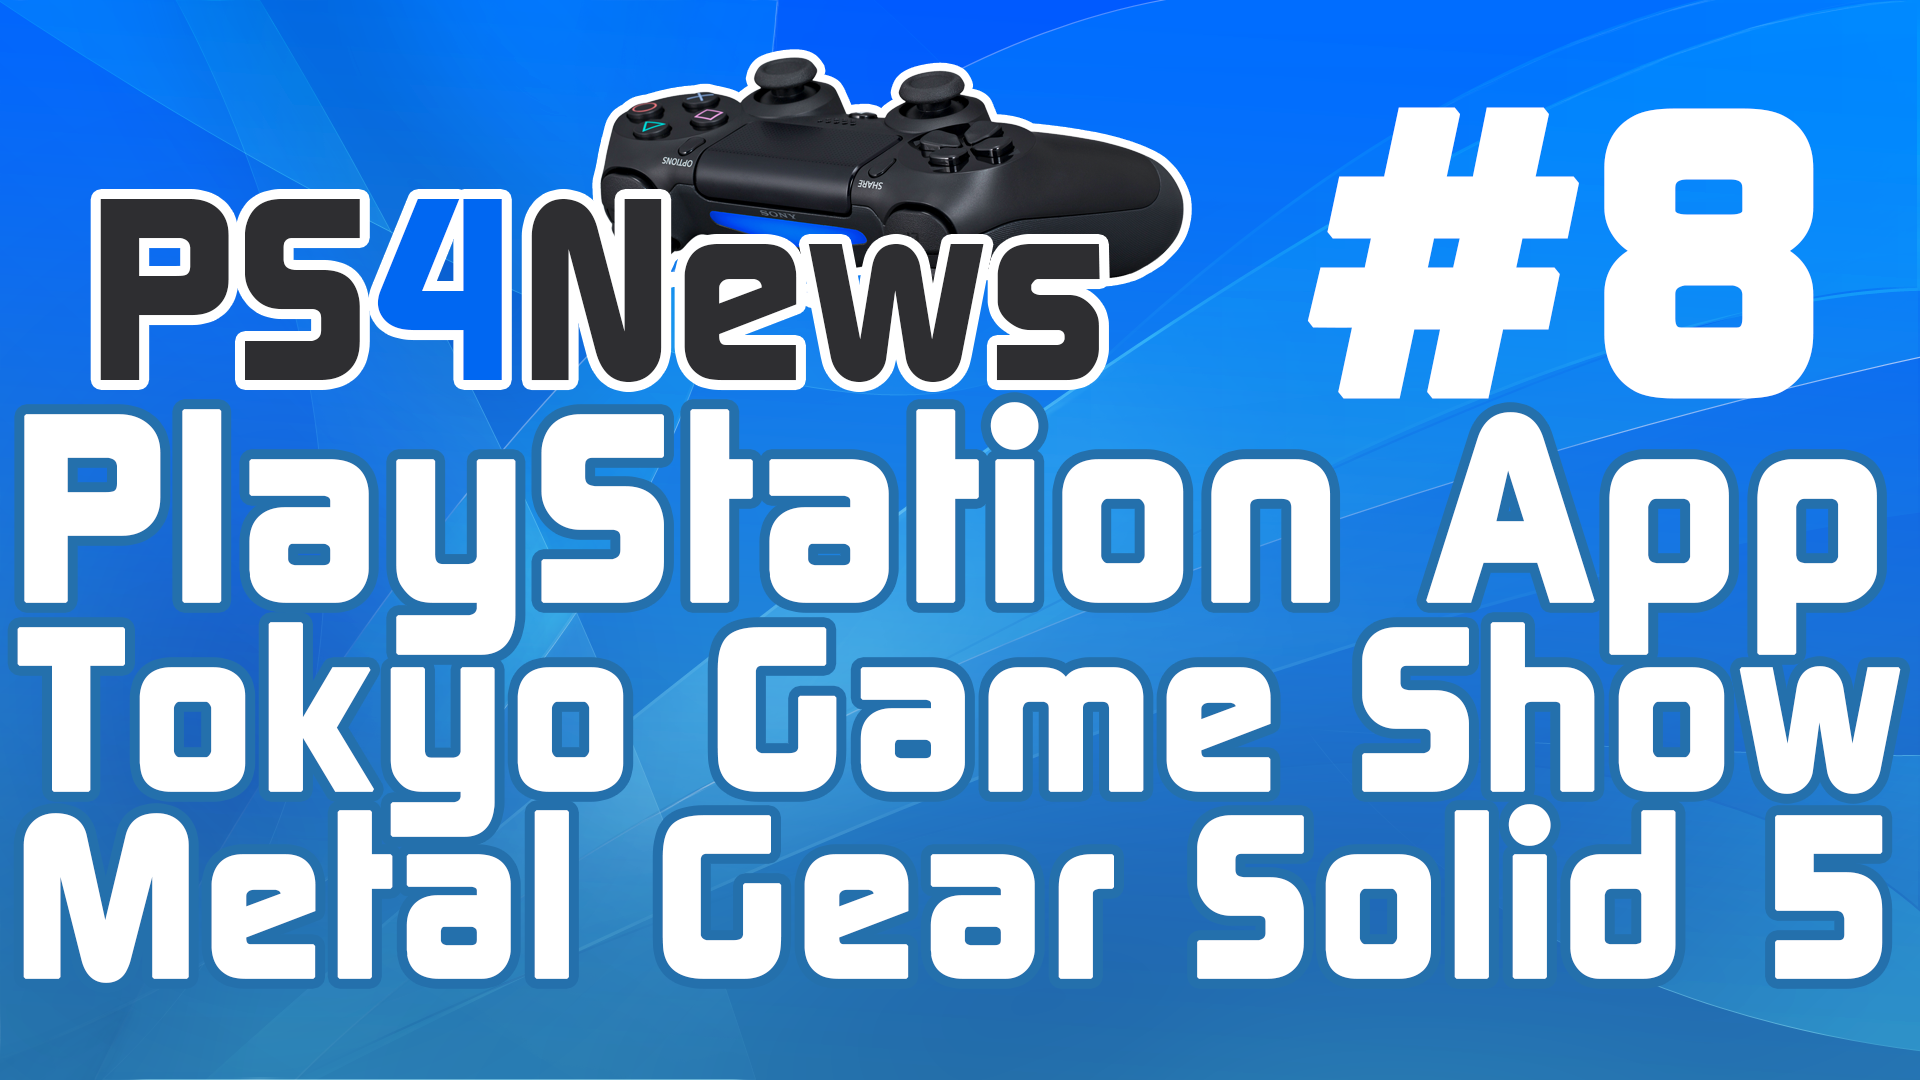 PS4News #8 Die PlayStation App – Tokyo Game Show News – Metal Gear Solid 5